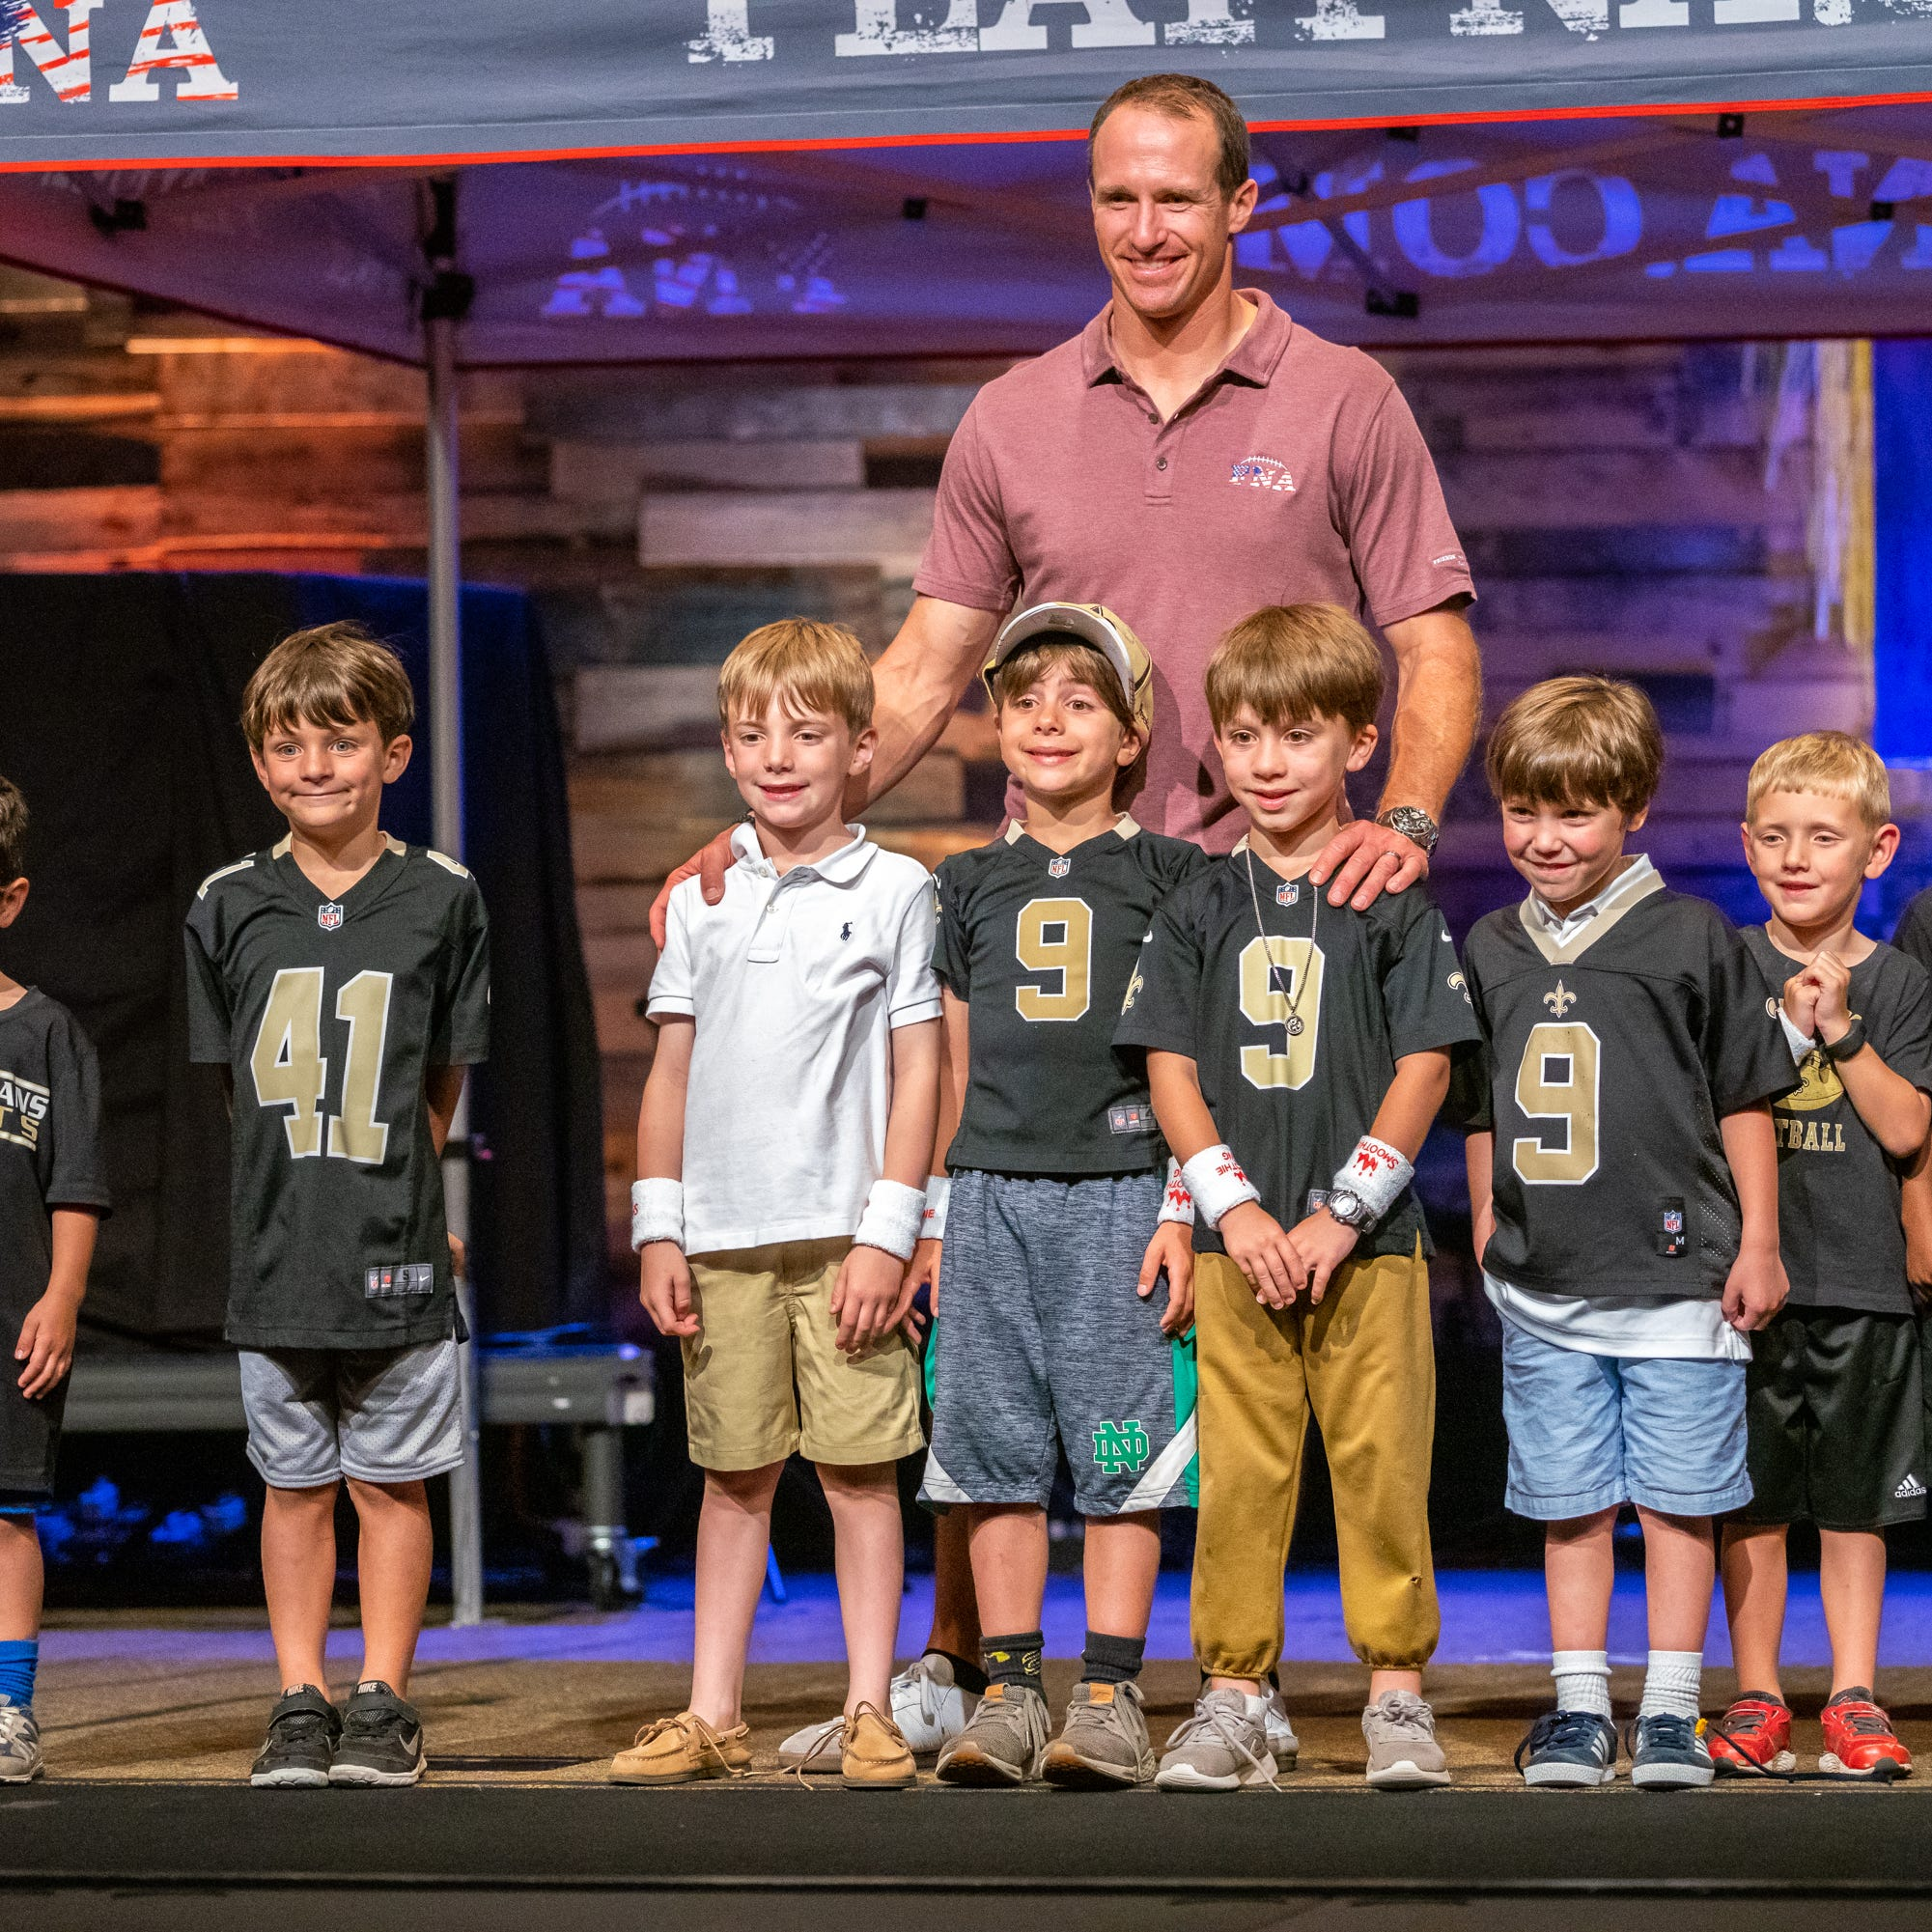 Brees combines love of family, football with Football 'N' America